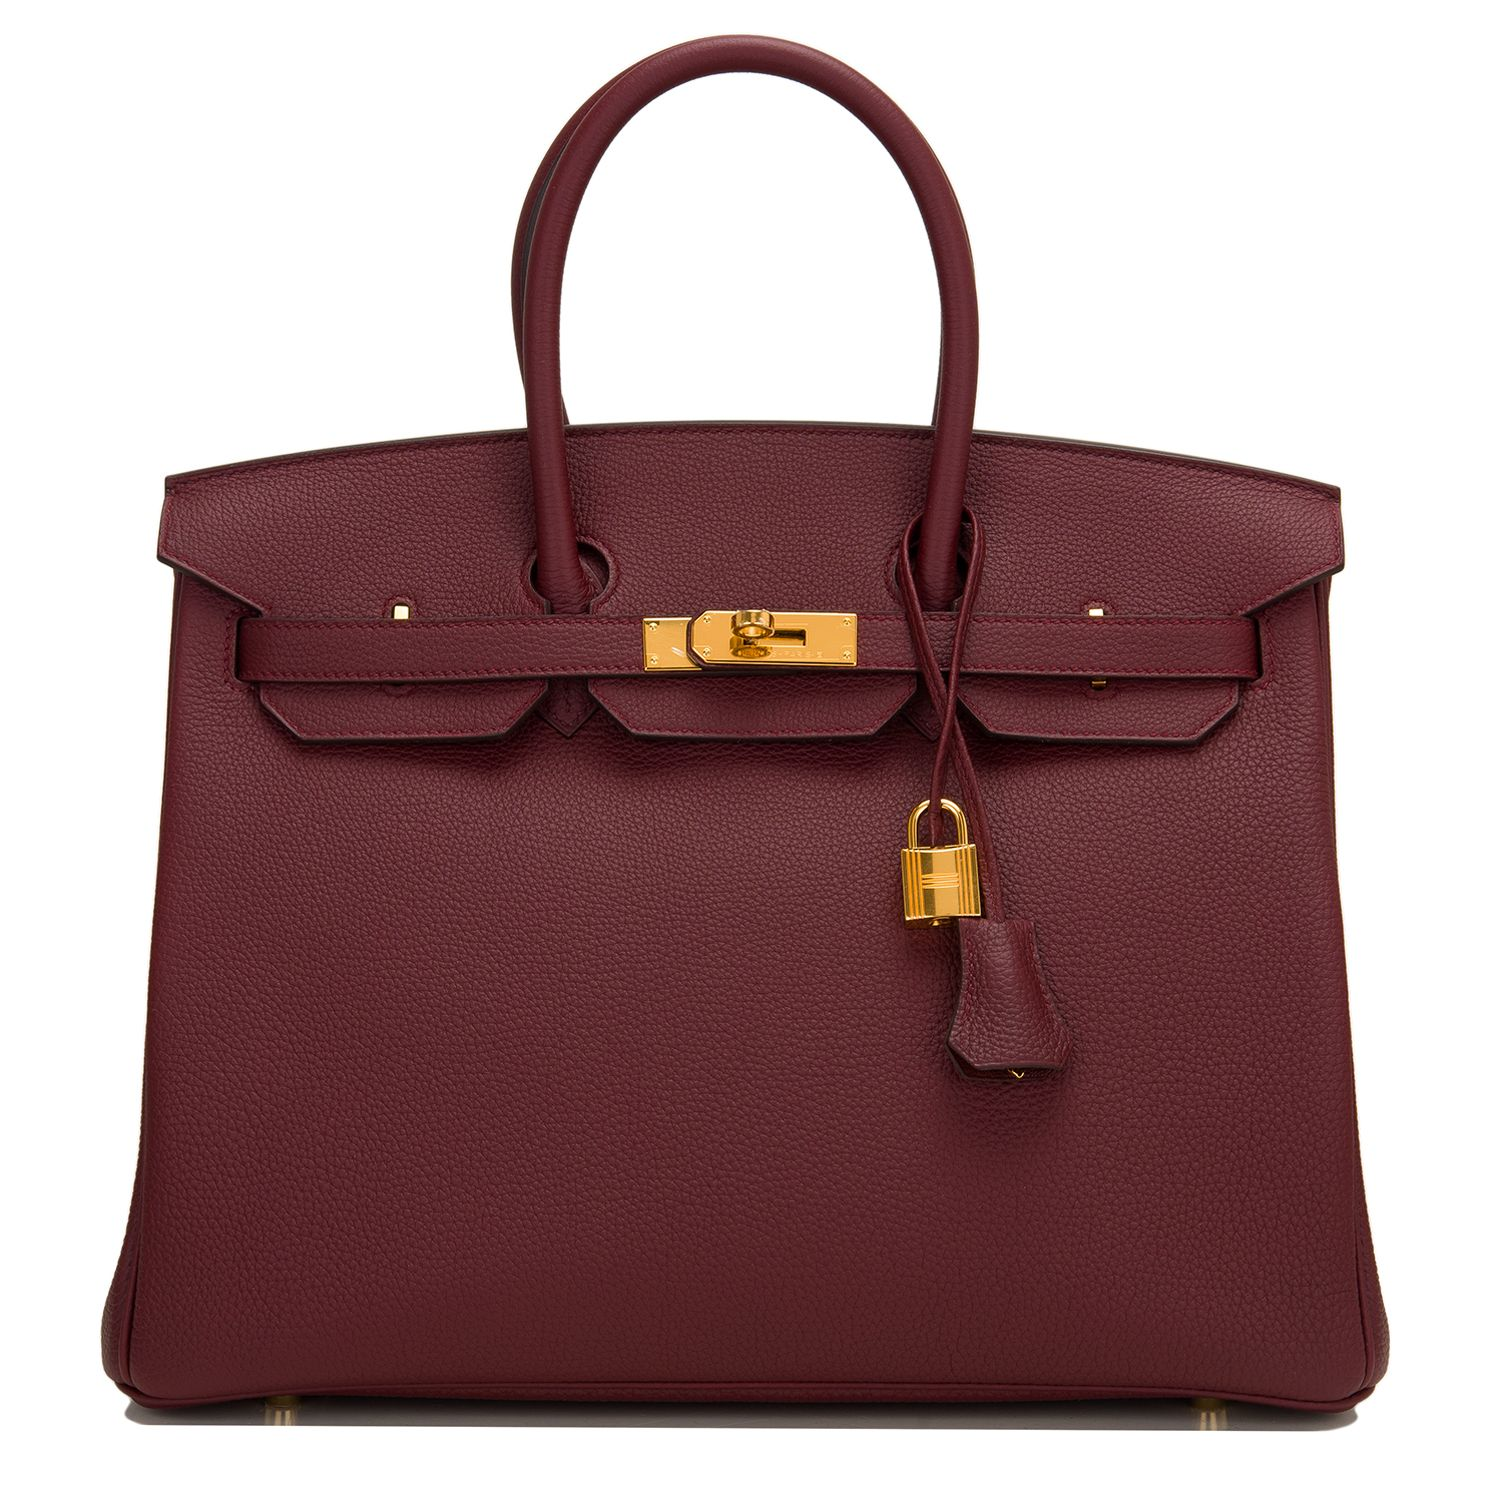 Hermes  Birkin  Bag Bordeaux Togo Gold Hardware  200fdf86bc657